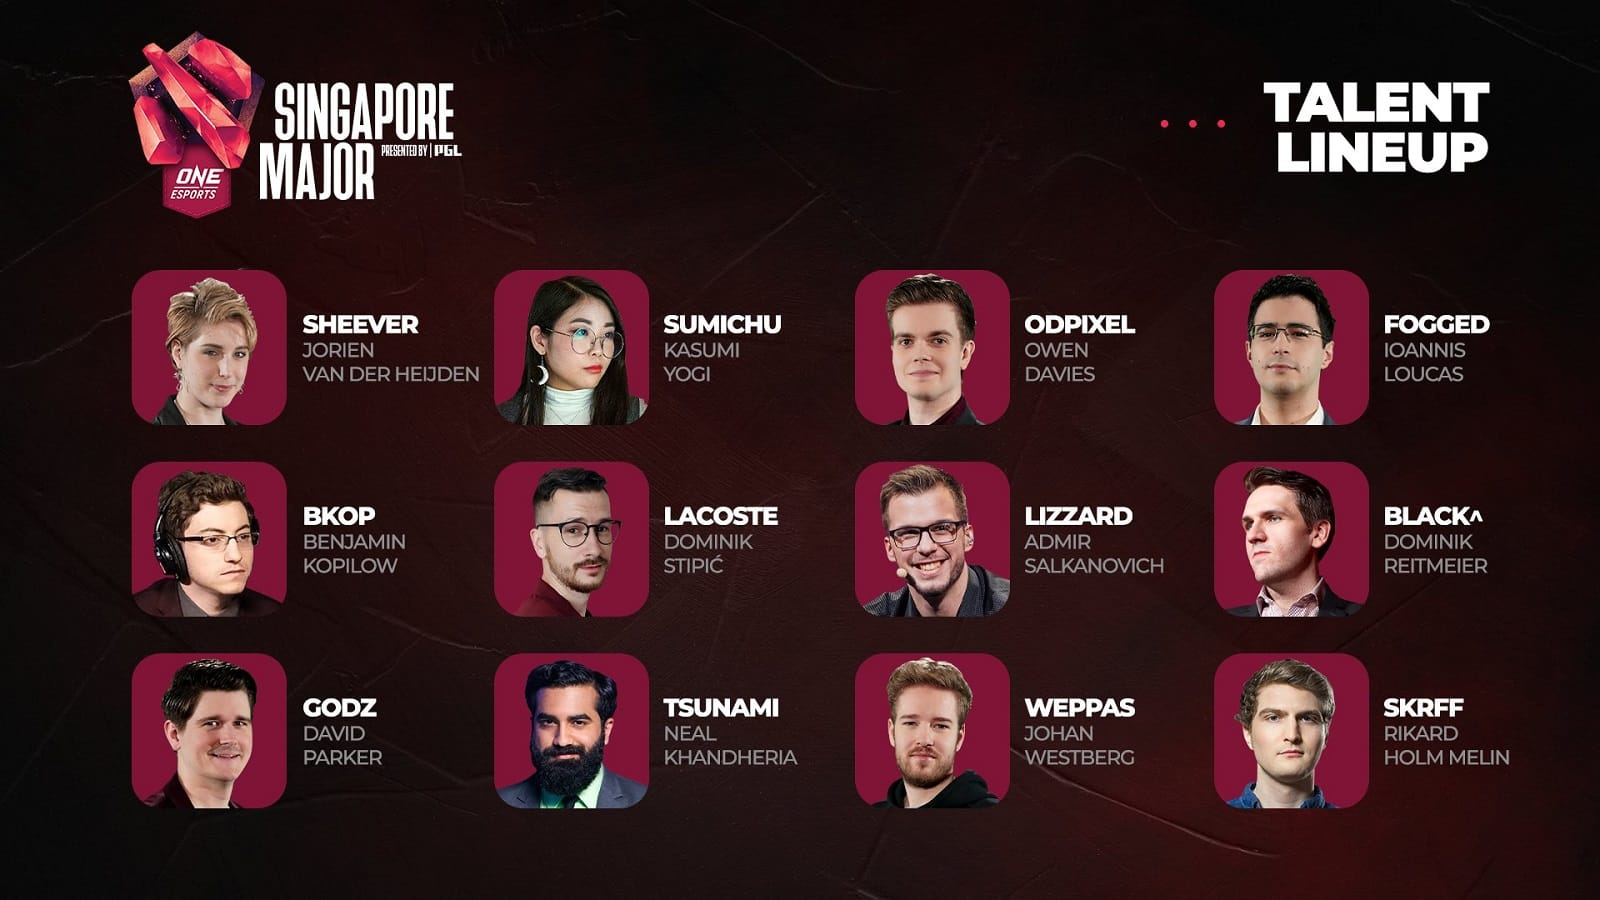 The whole talent lineup for the ONE Esports Singapore Major 2021